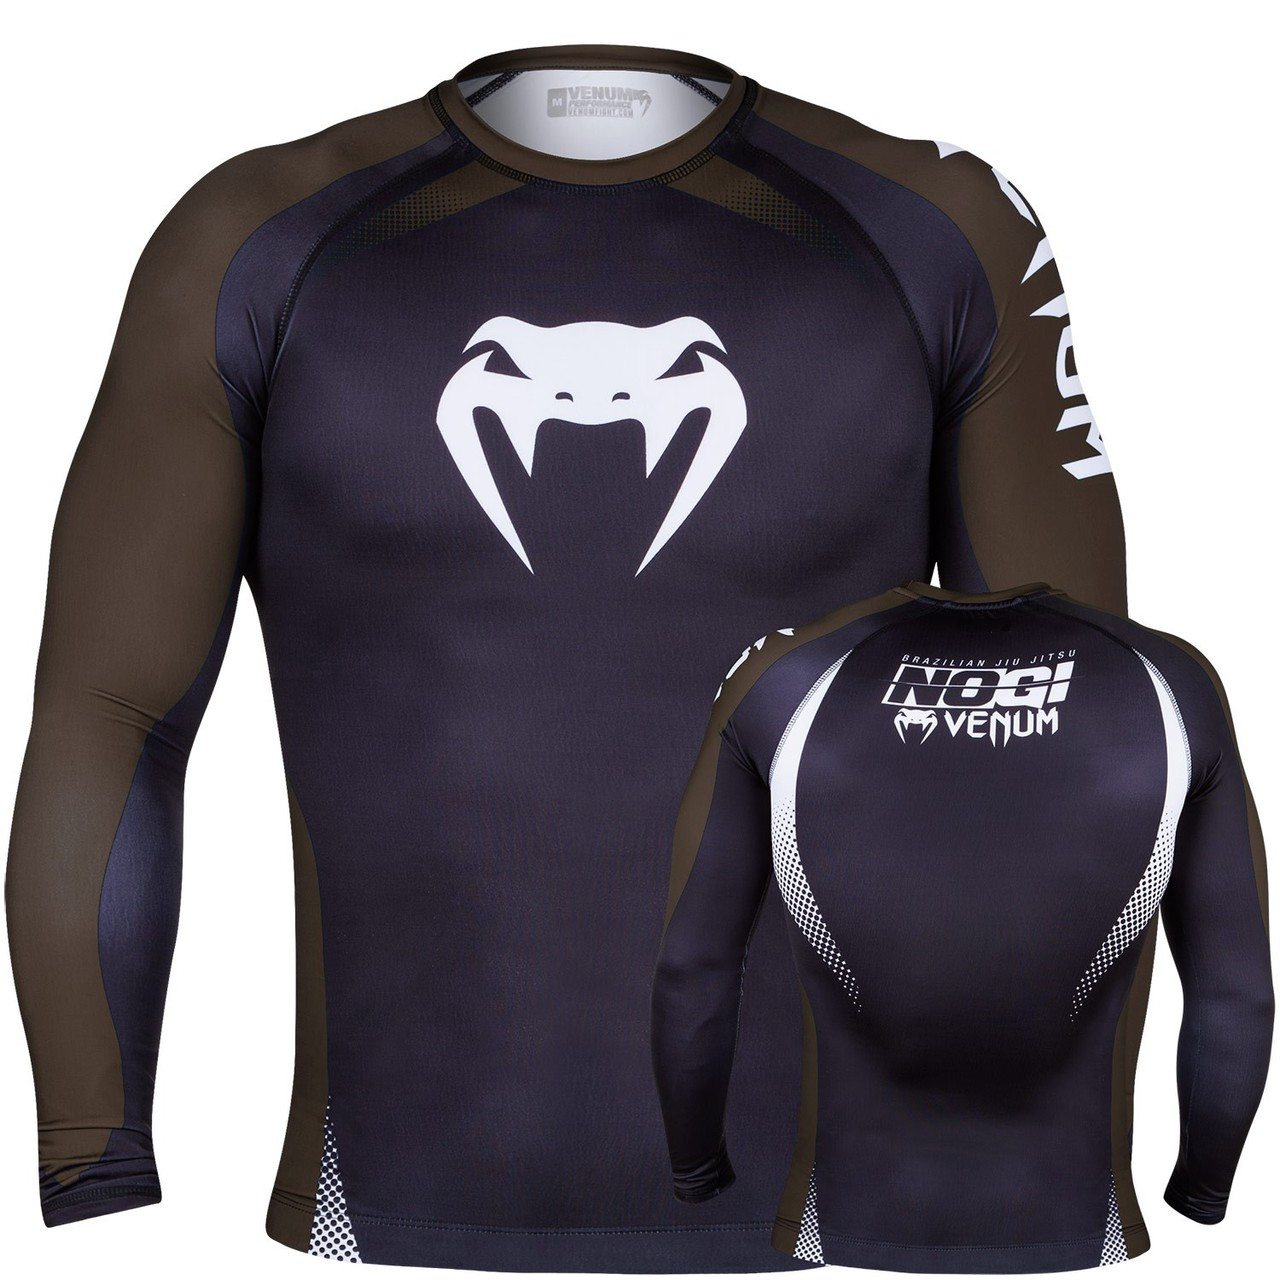 Venum No Gi Ranked Rashguard Brown Belt Long Sleeve Rashguard.  The Jiu Jitsu Shop.  www.thejiujitsushop.com   Enjoy free shipping storewide